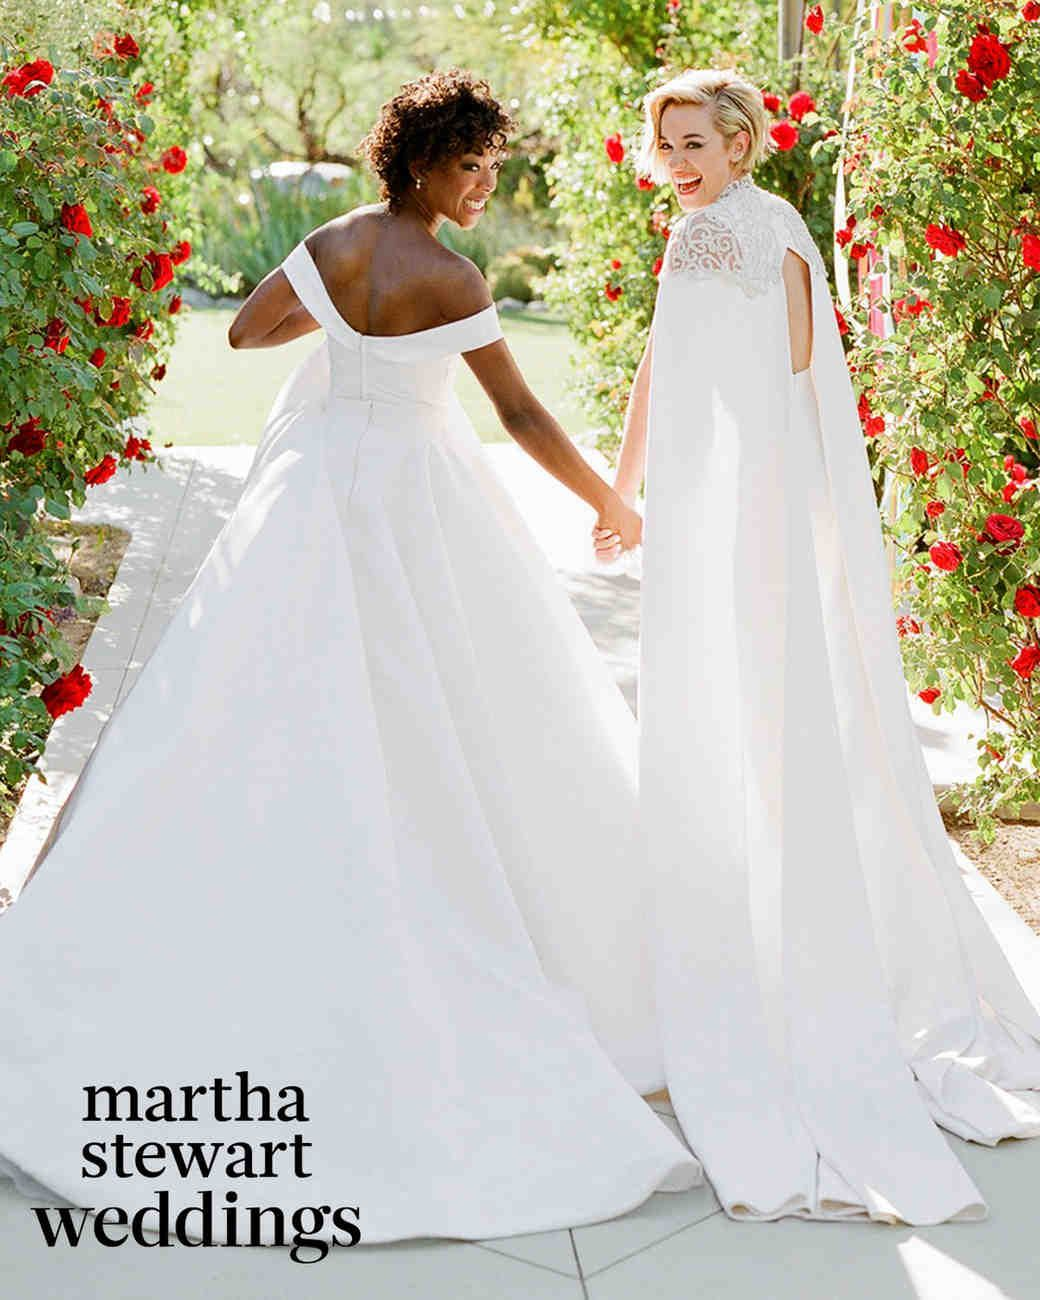 Samira wiley wedding dress  Exclusive See Samira Wiley and Lauren Morellius Incredible Wedding